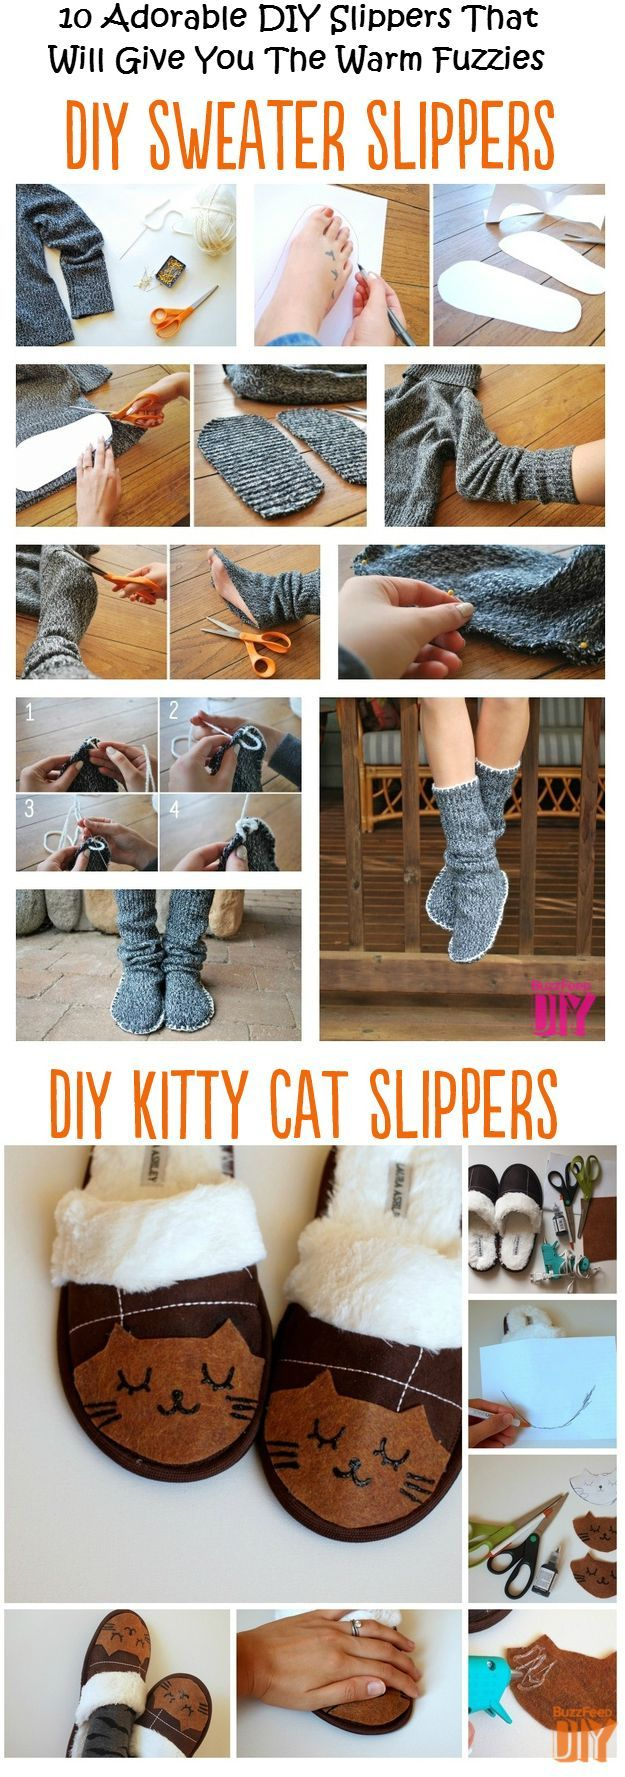 Super-cozy slippers made from a sweater